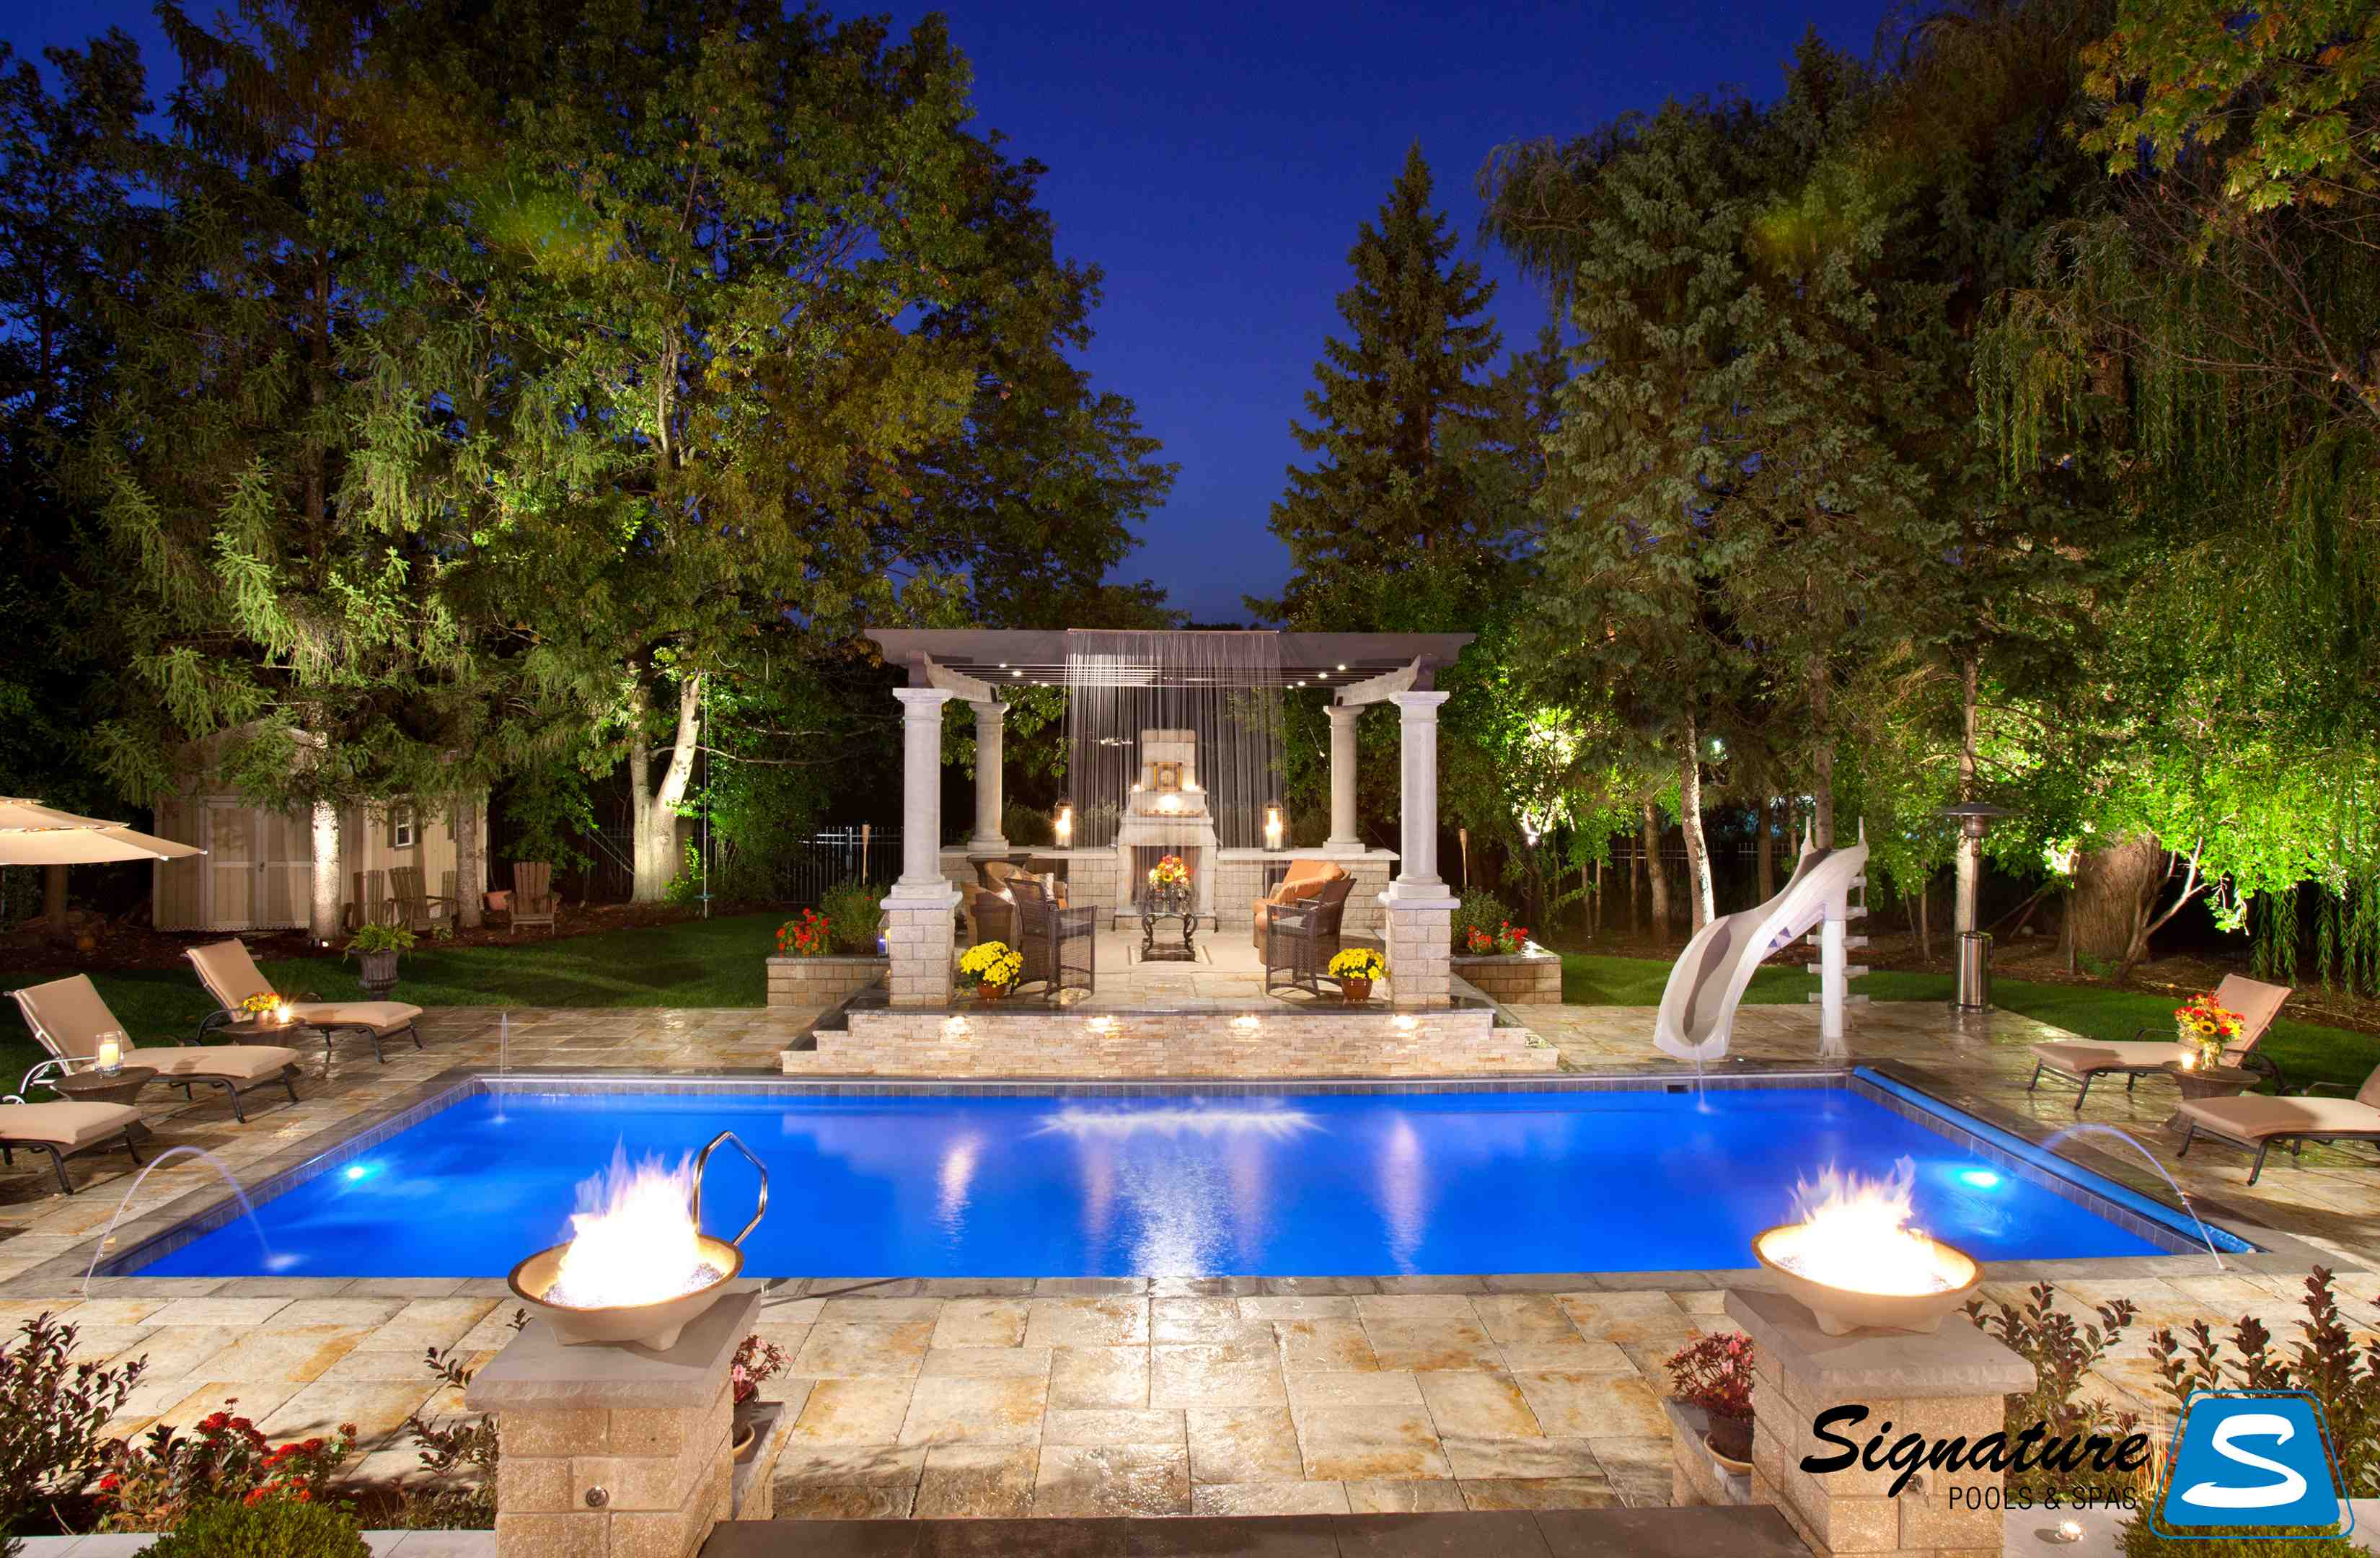 Ten tips for selling luxury backyards patio hearth blog - Luxury swimming pools ...